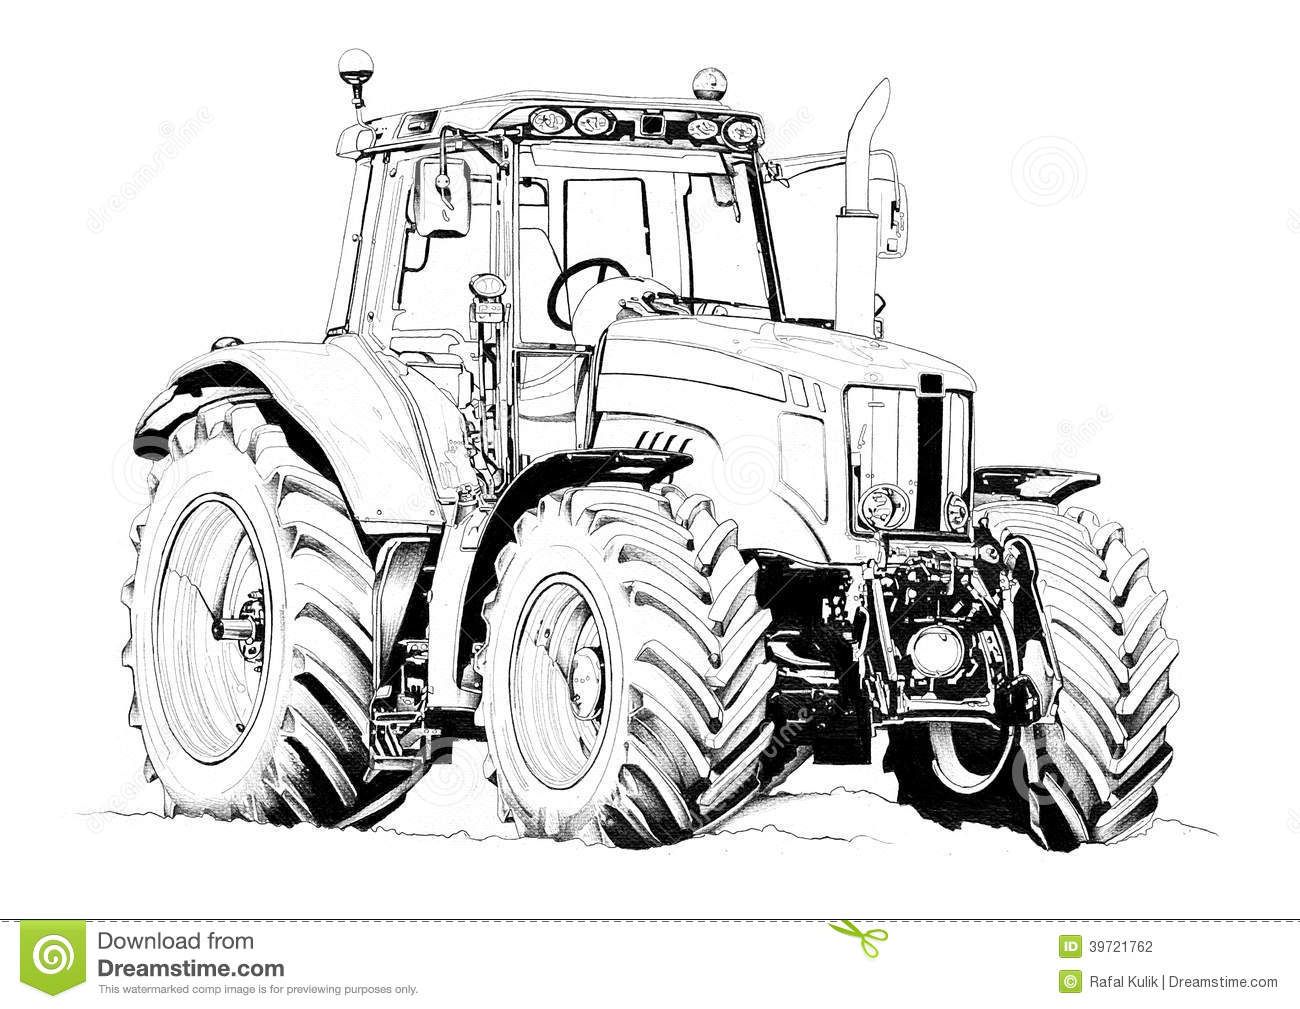 barn plans with Stock Photography Agricultural Tractor Illustration Art Drawing I Traditional Artist Handmade Paper I Use Pencil Image39721762 on Plan details furthermore Stock Photography Agricultural Tractor Illustration Art Drawing I Traditional Artist Handmade Paper I Use Pencil Image39721762 together with Wichita together with Studio Apartment Layout besides Sectiong.